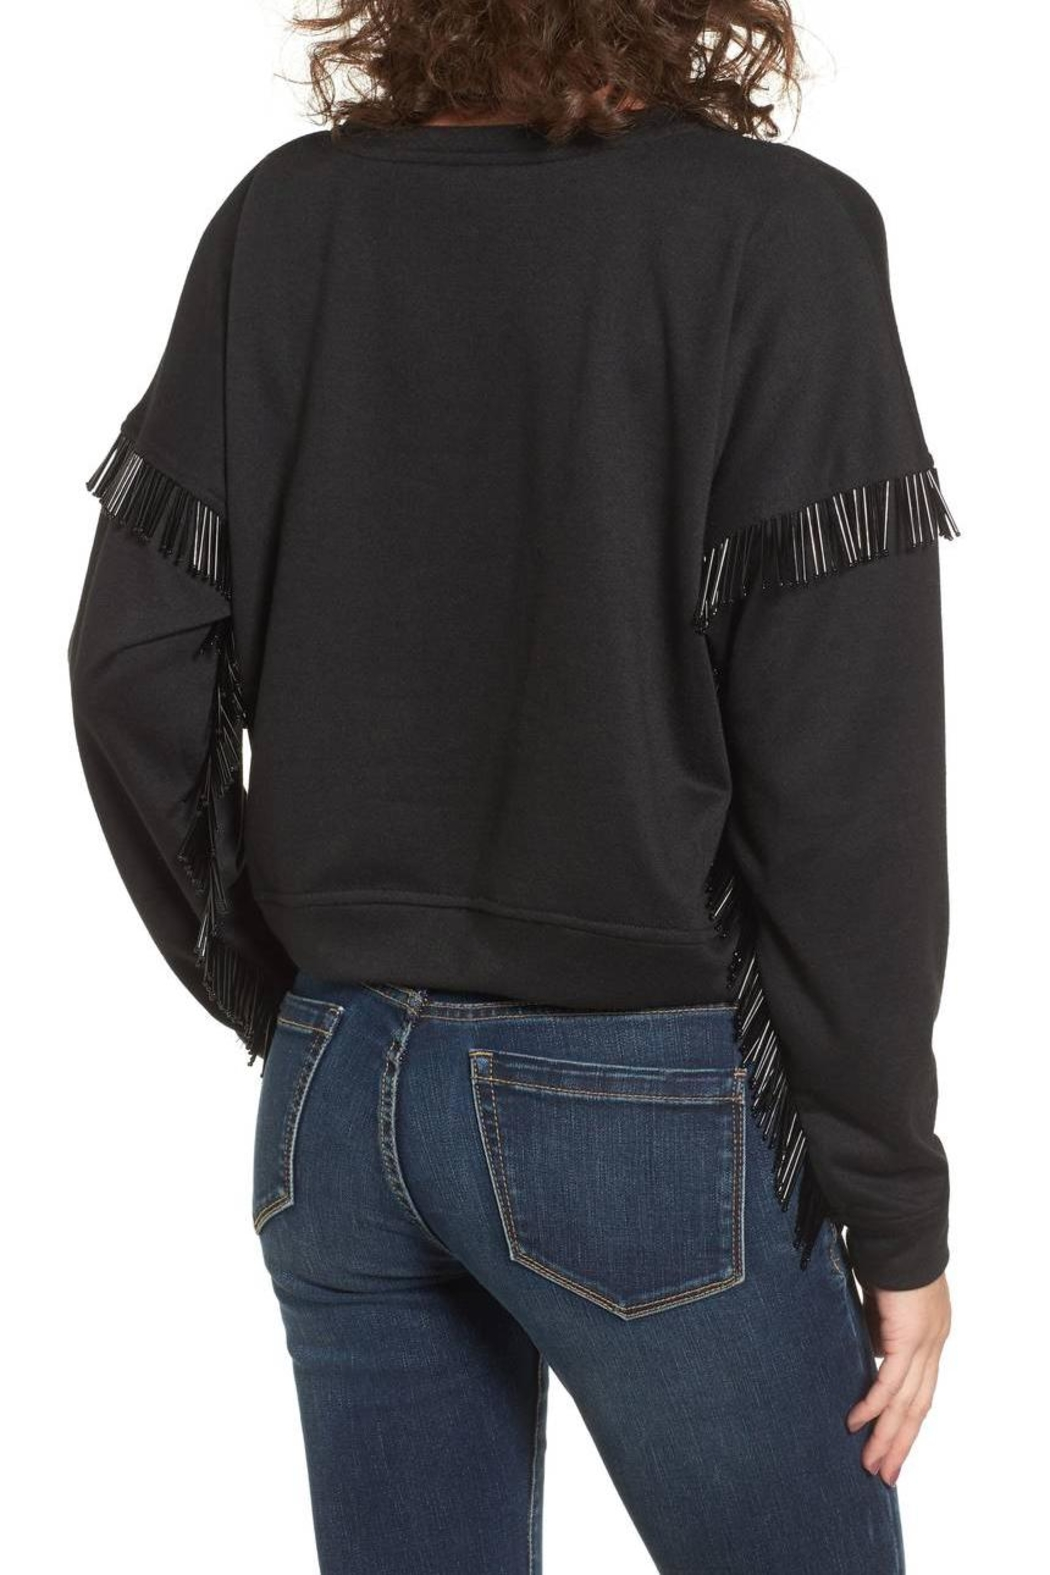 Blank NYC Beaded Fringe Crop Top - Side Cropped Image